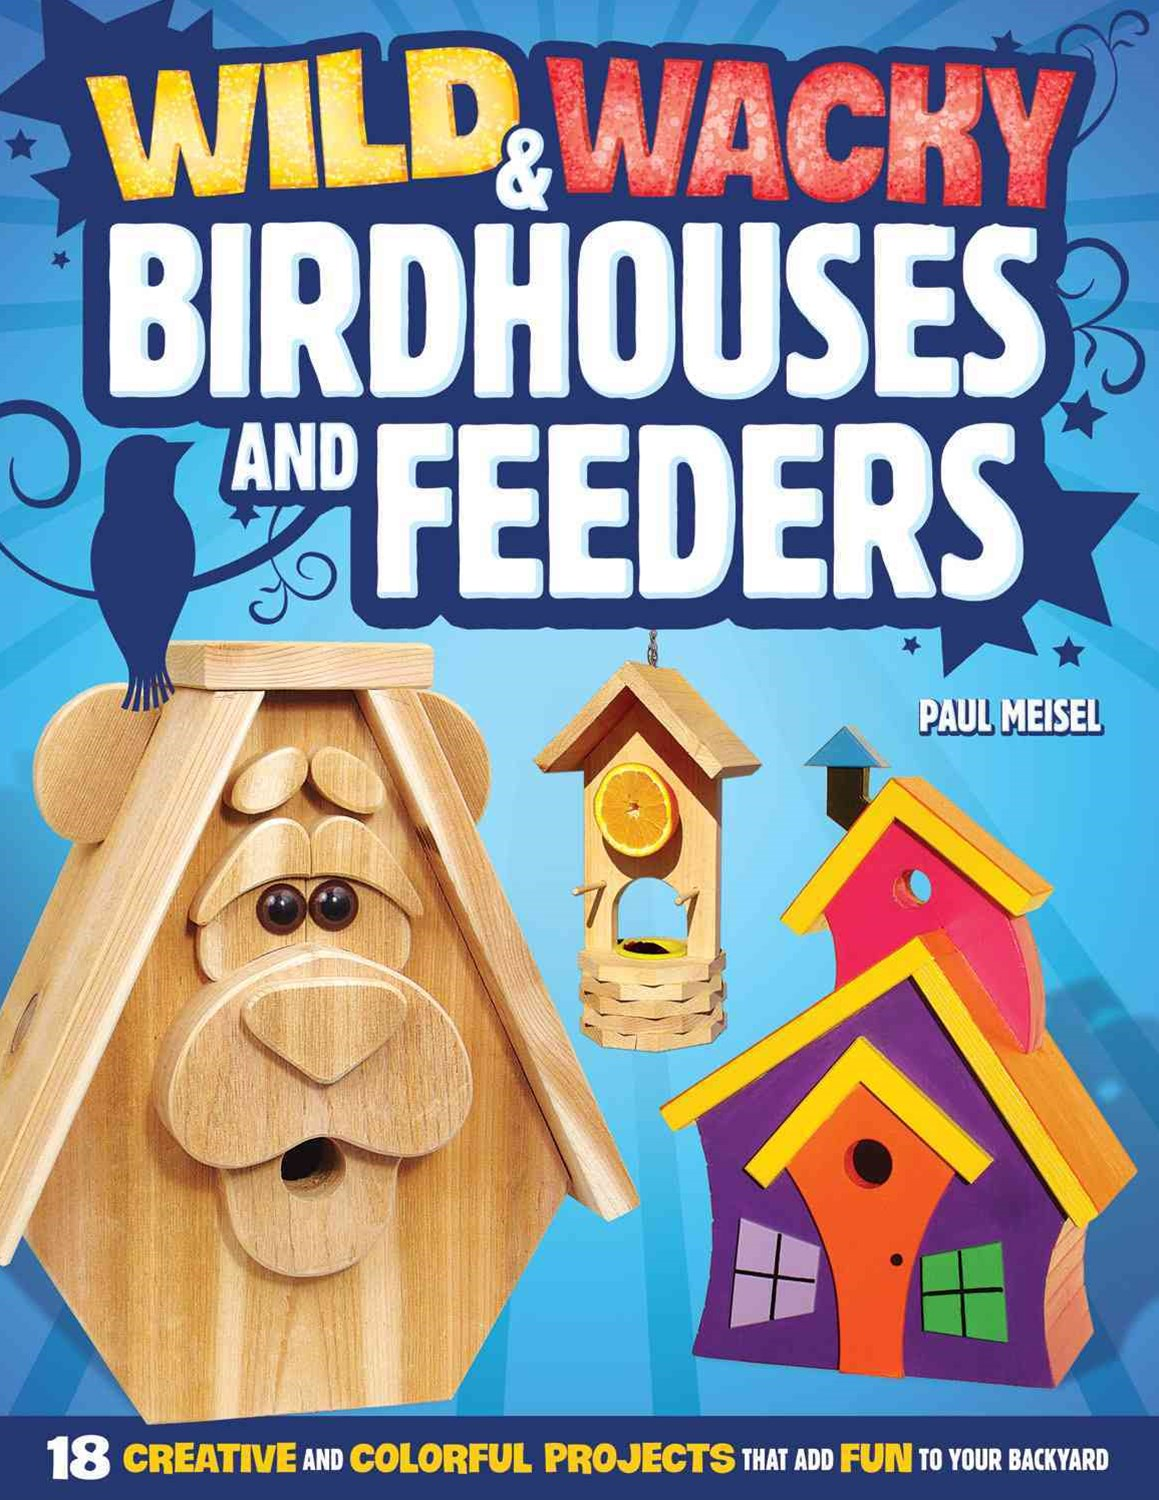 Wild and Wacky Birdhouses and Feeders